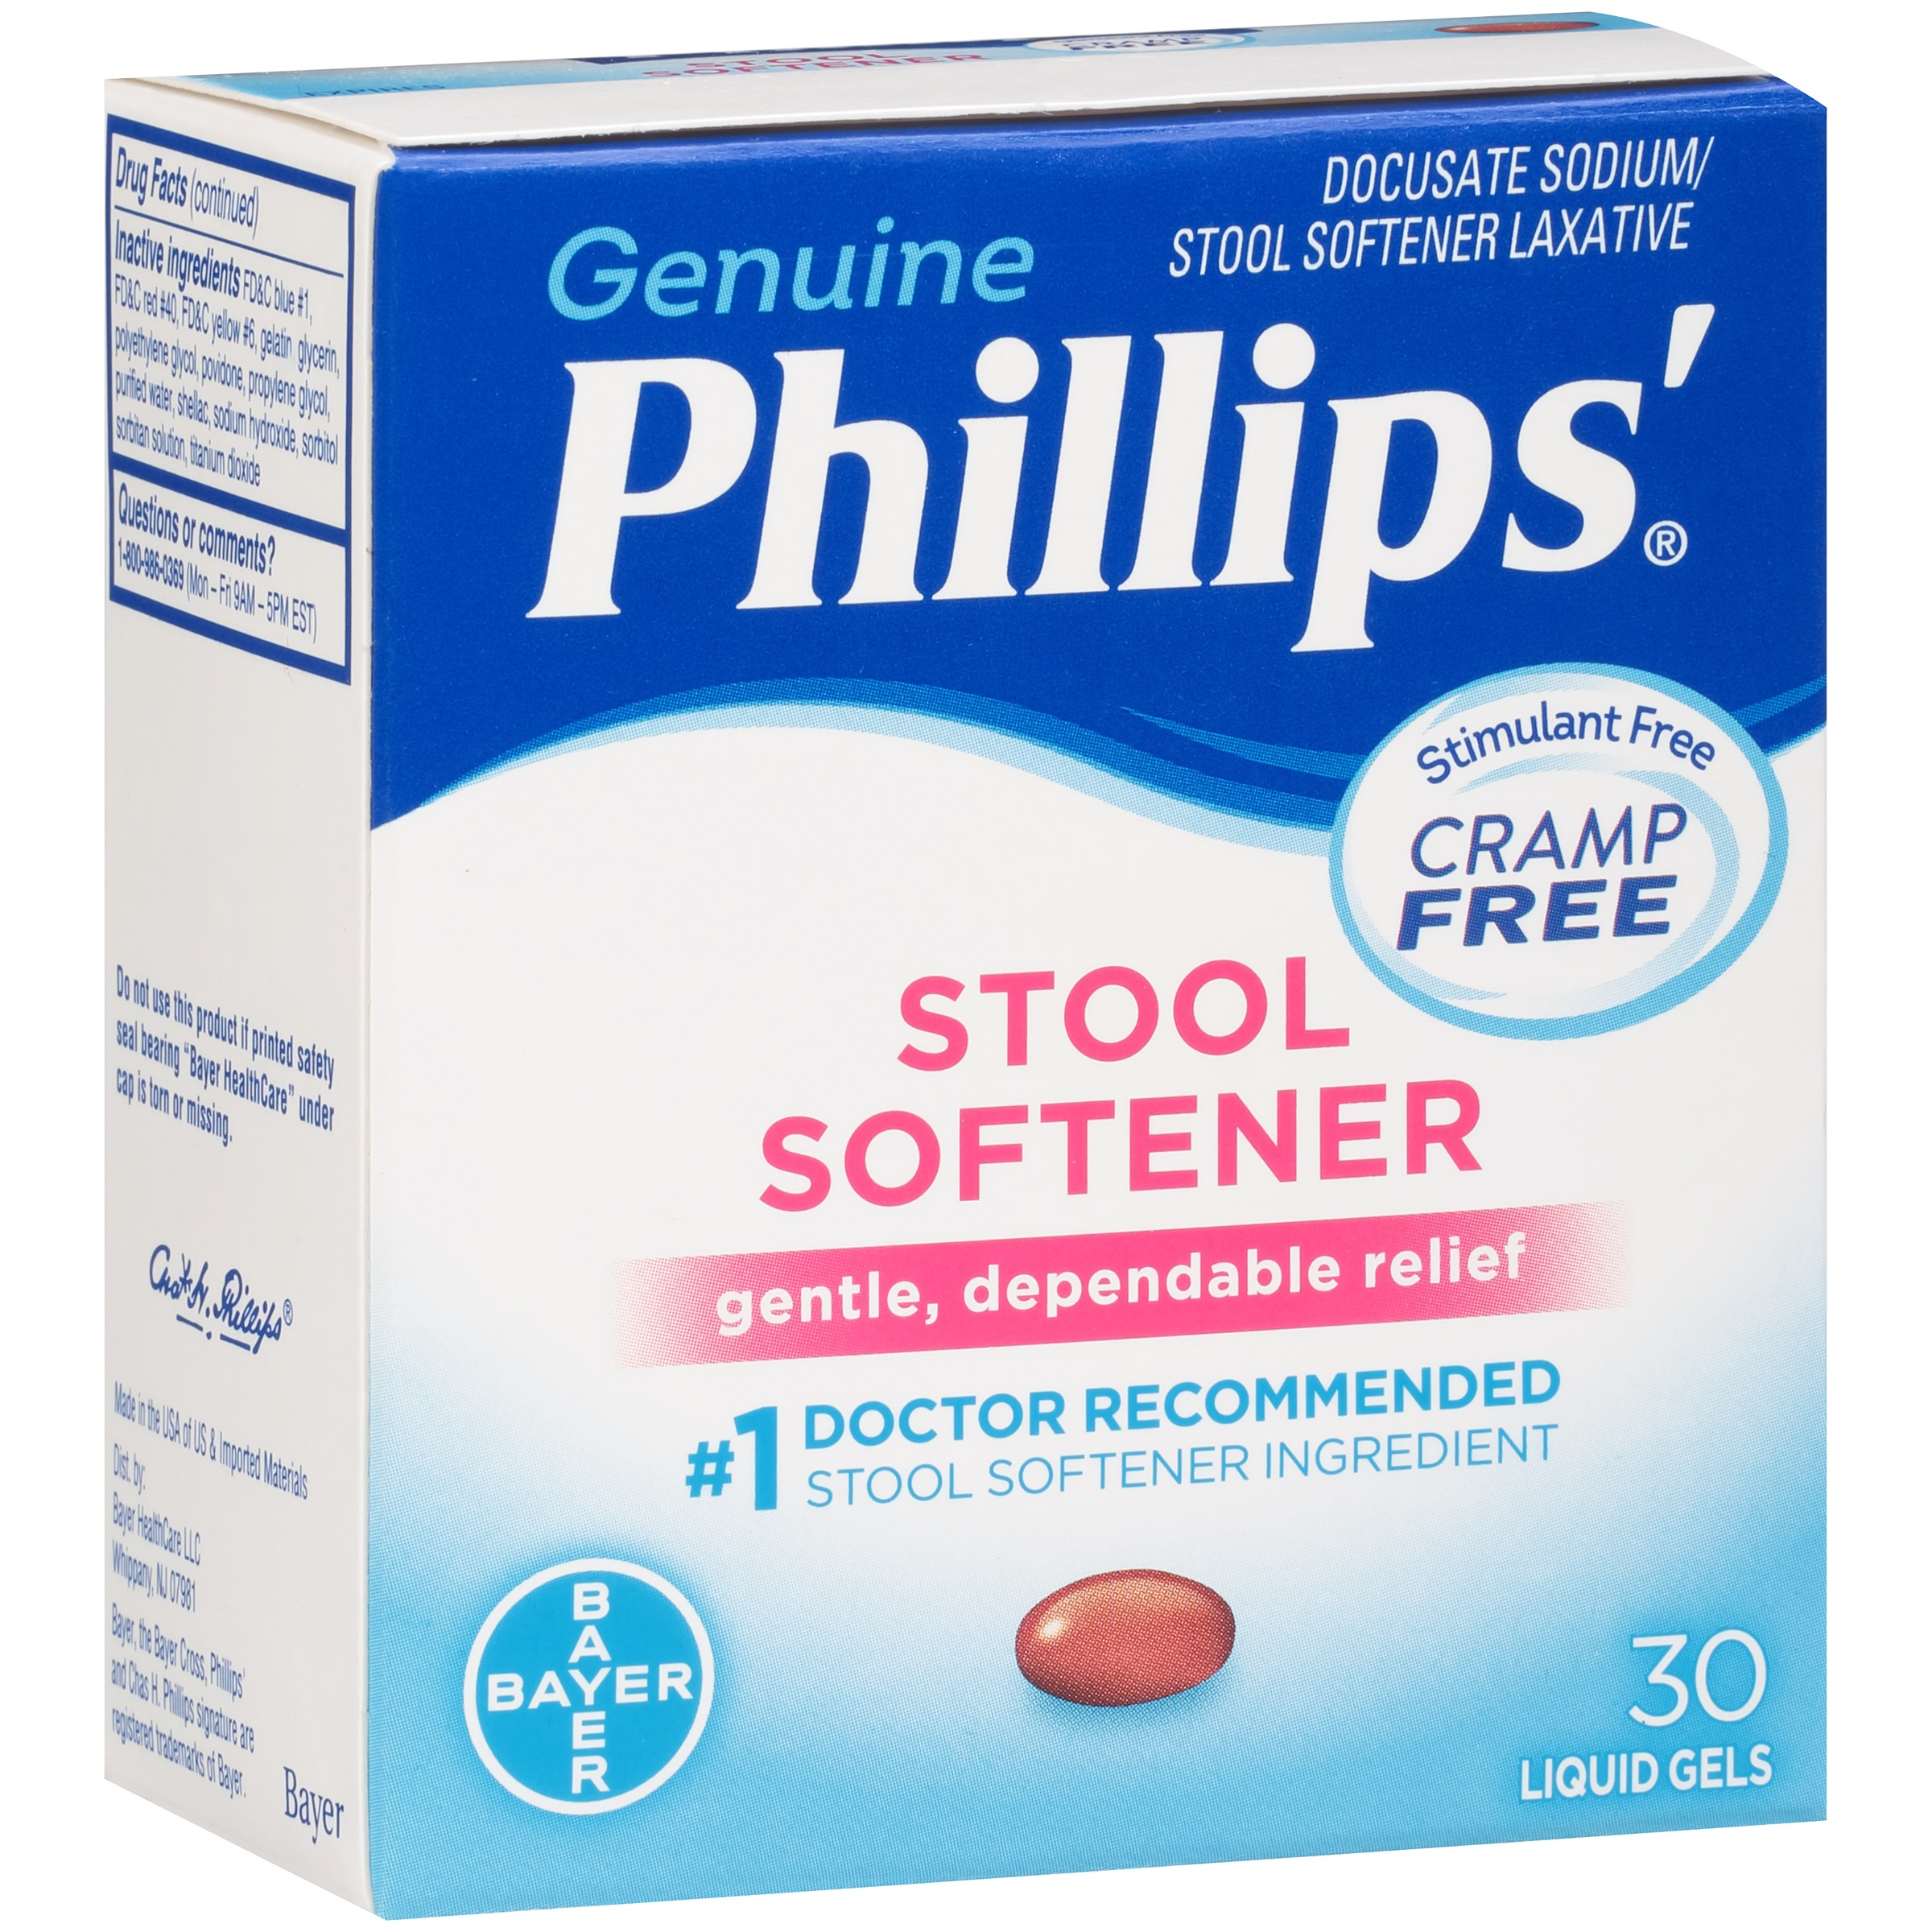 Genuine Phillips'�� Stool Softener Liquid Gels 30 ct Box